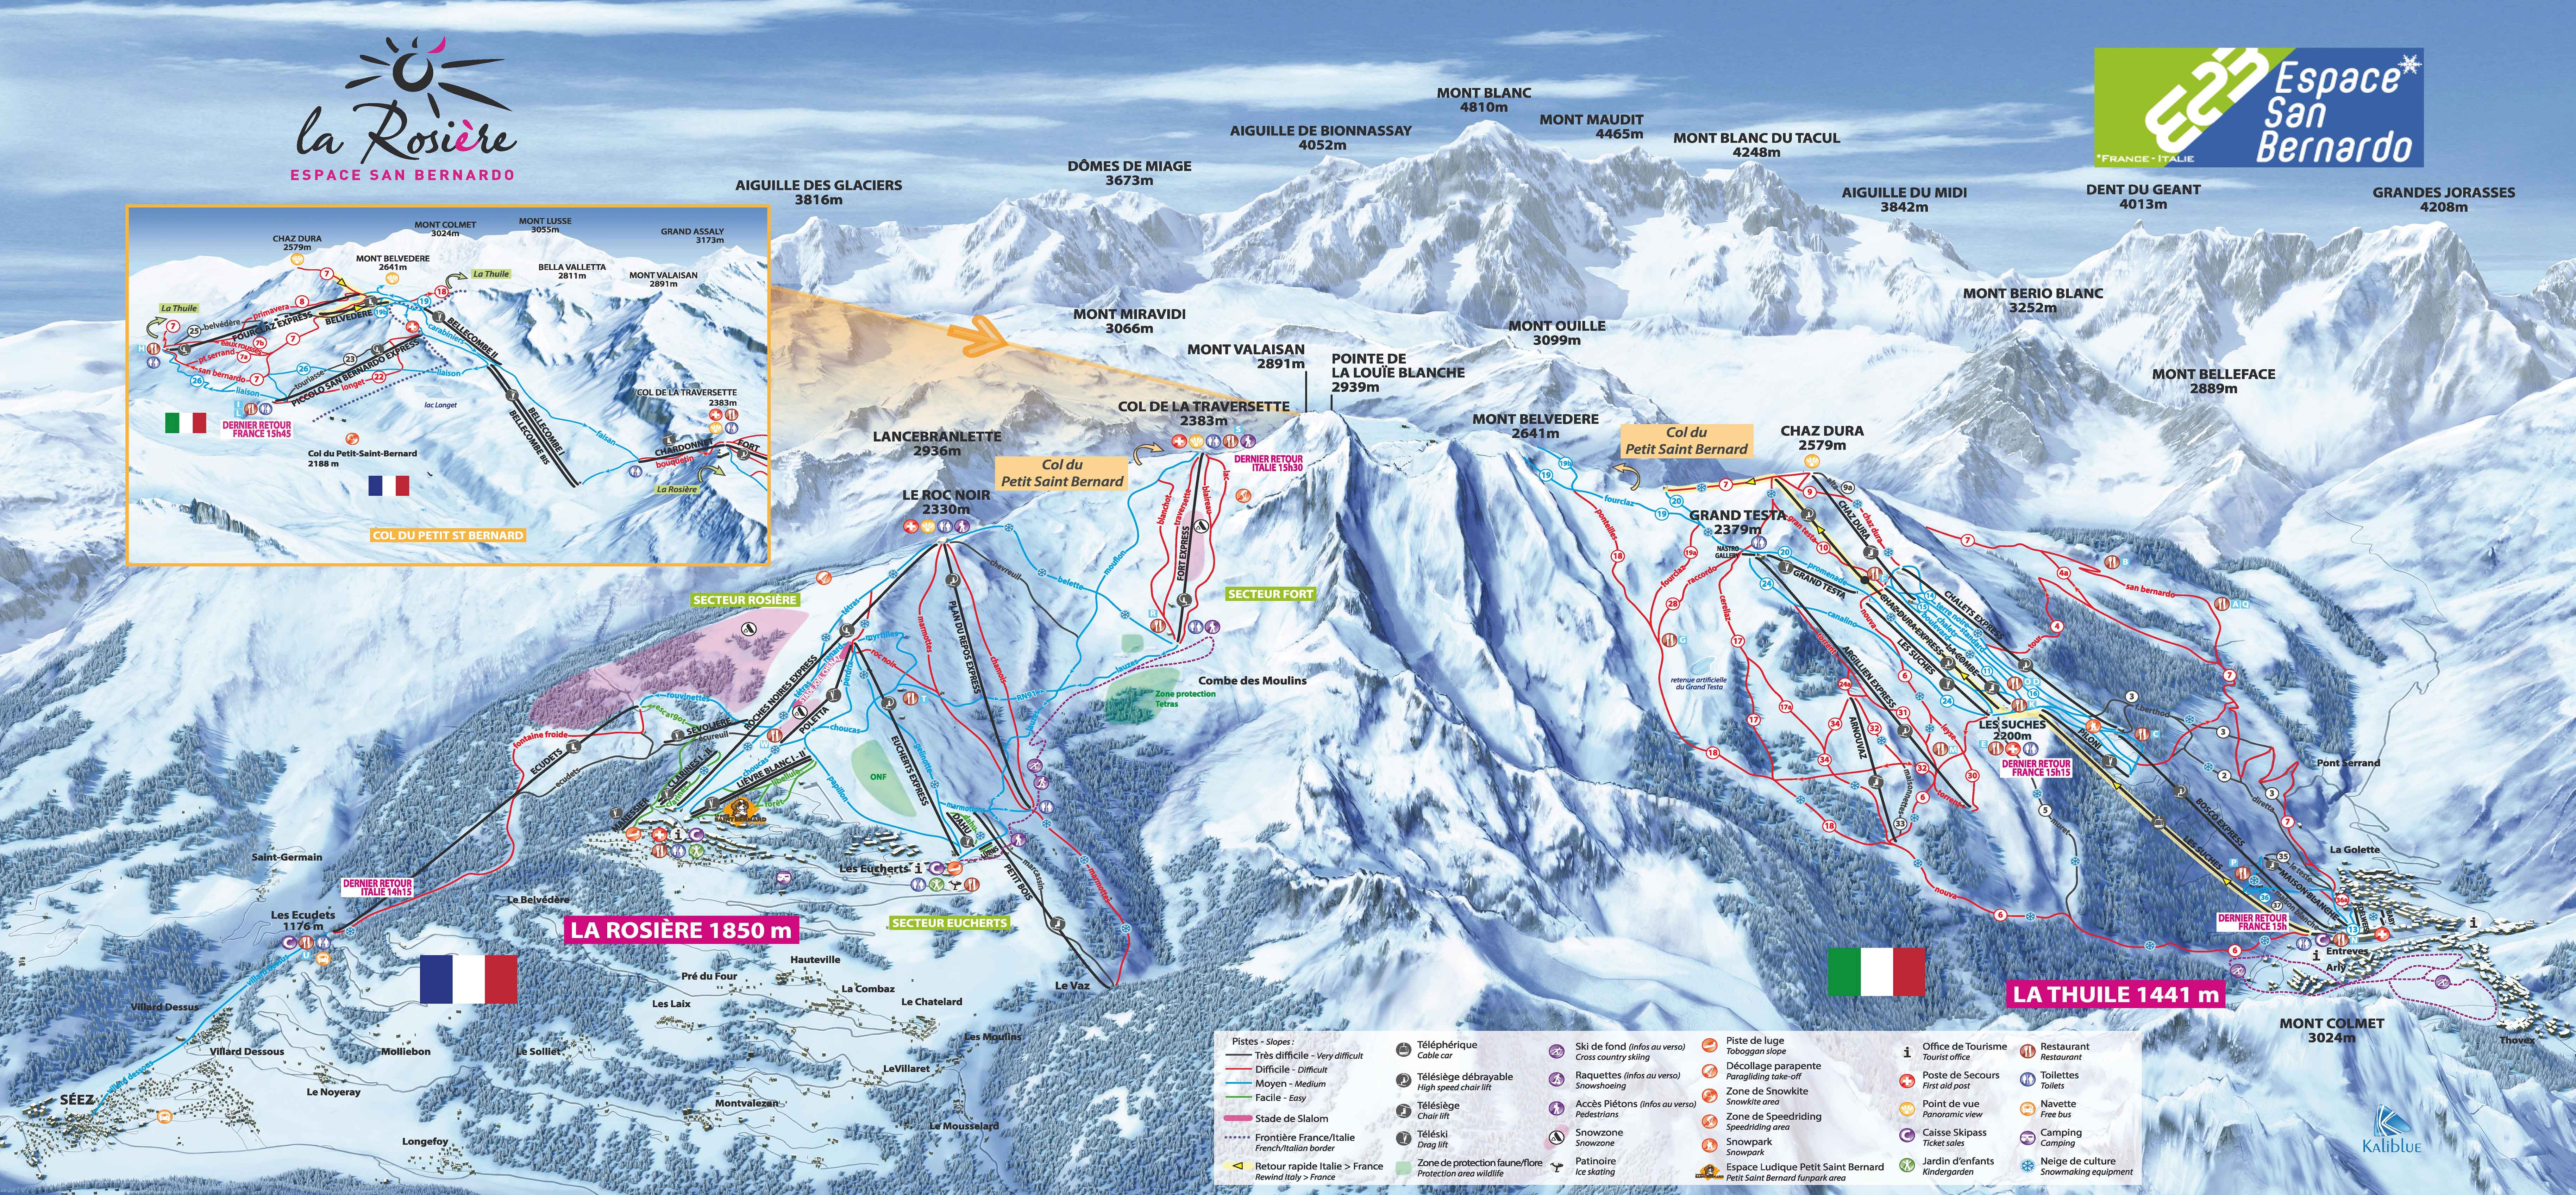 La Rosire Piste Maps and Ski Resort Map PowderBeds